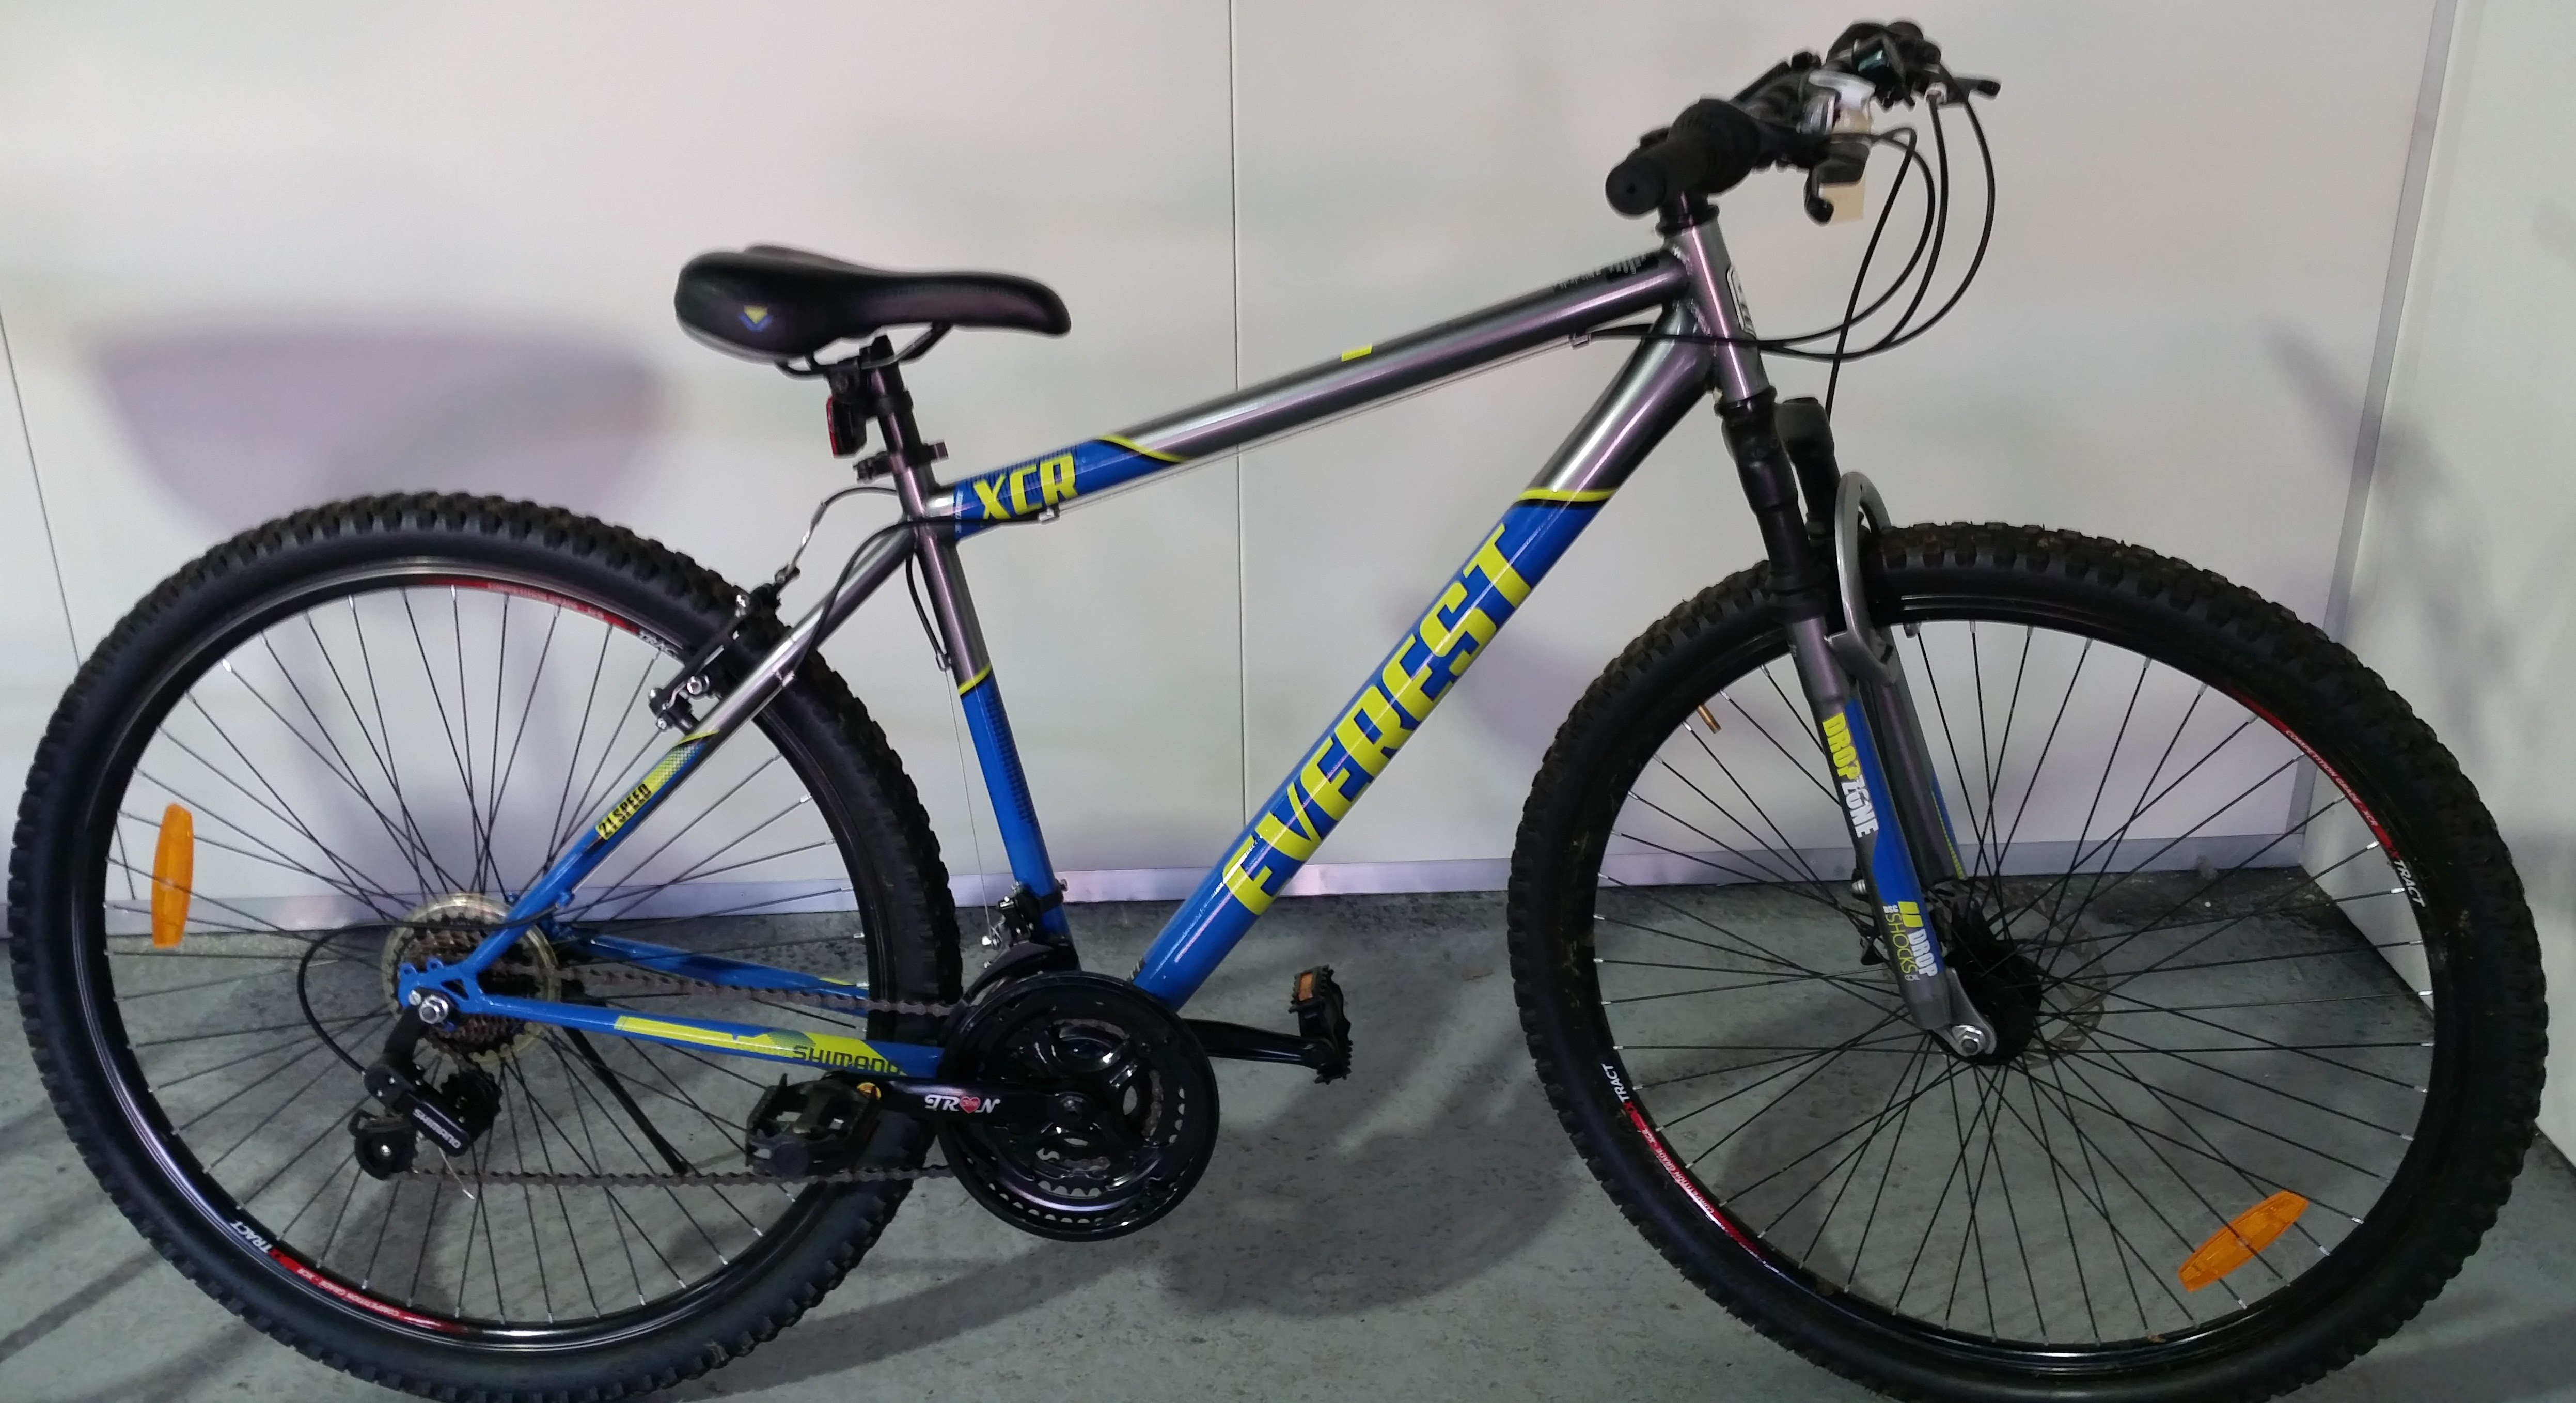 Everest Xcr 21 Speed Mountain Bike Lot 922474 Allbids